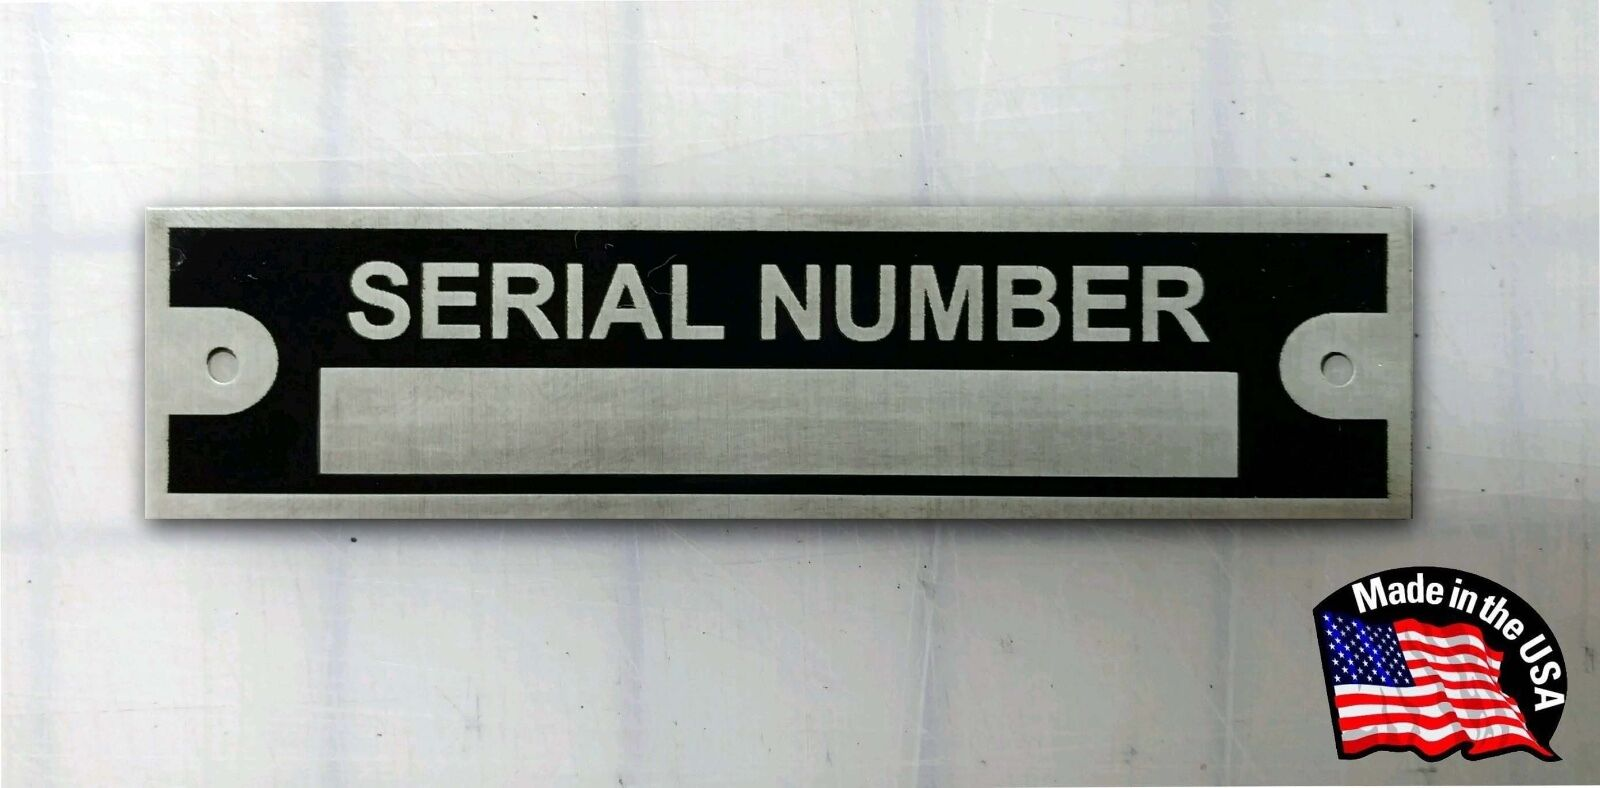 Serial Number Plate Hot Rod Rat Chevrolet Plymouth Dodge